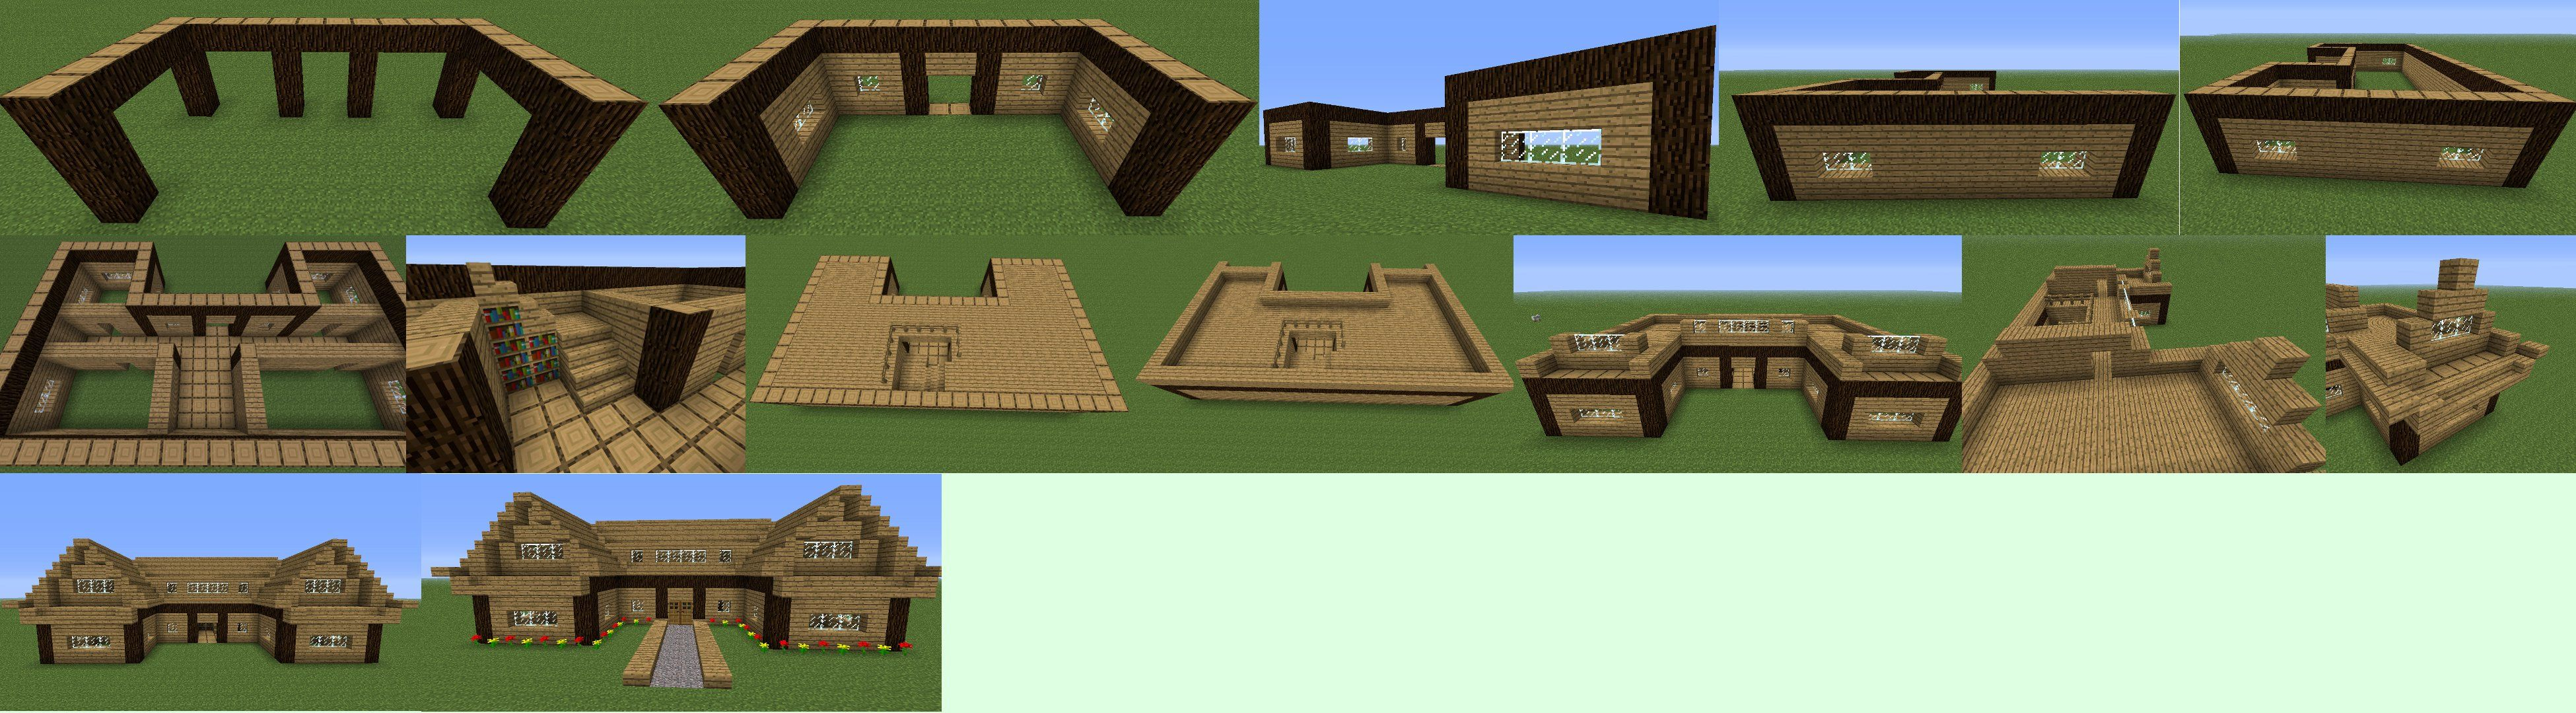 Minecraft houses step by step google search minecraft for How to build a house step by step instructions